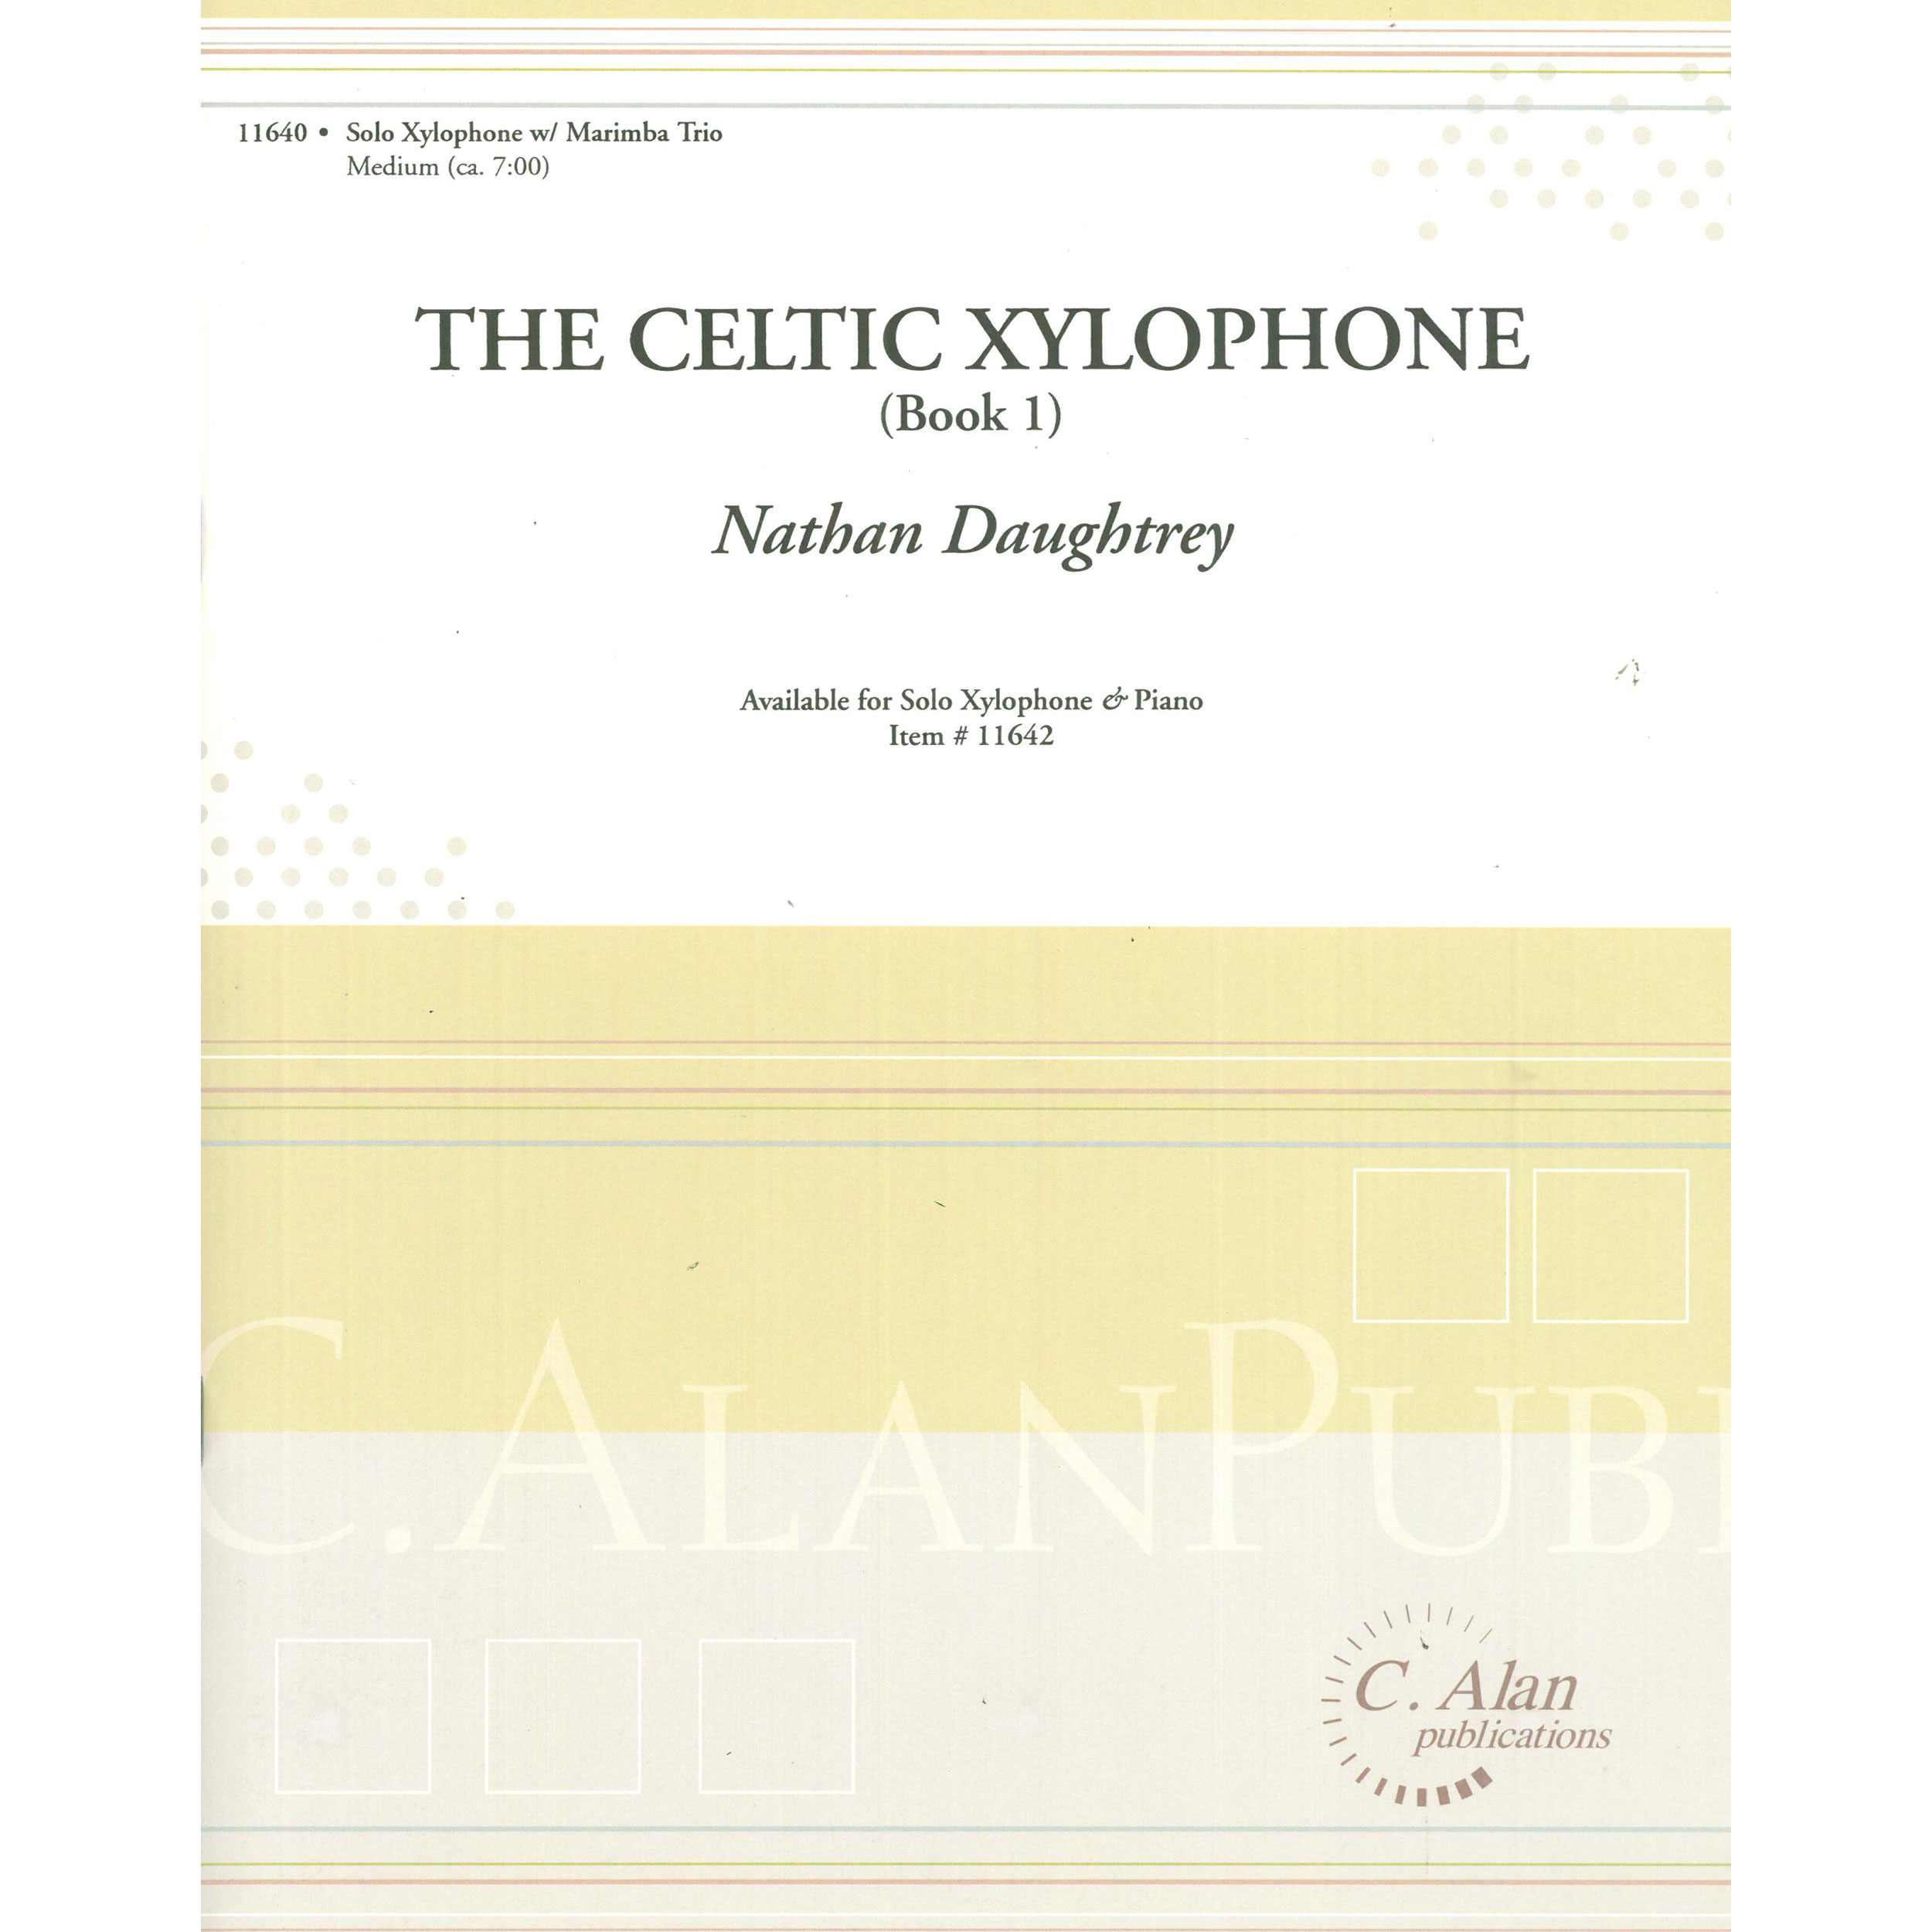 Celtic Xylophone (Book 1) by Nathan Daughtrey